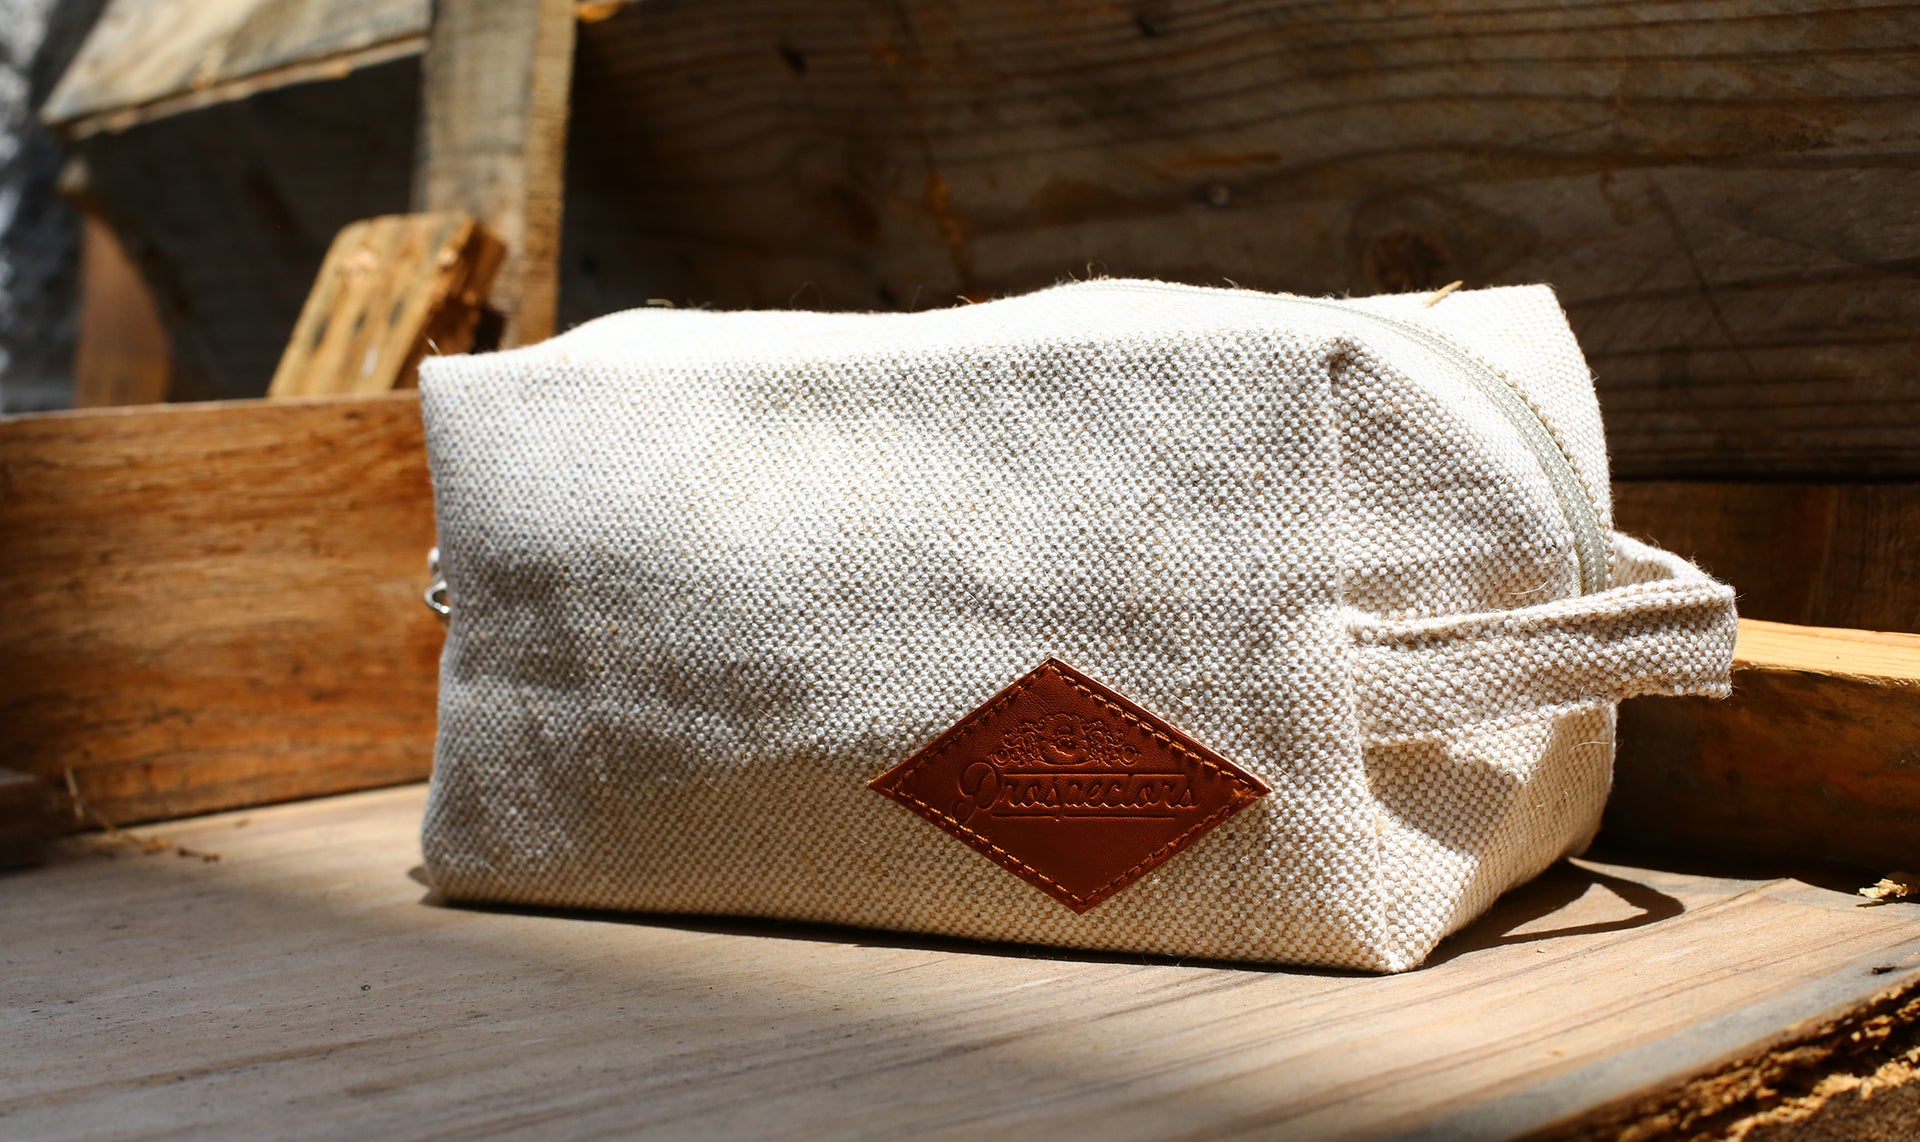 Prospectors Pomade Hemp Toiletry Bag